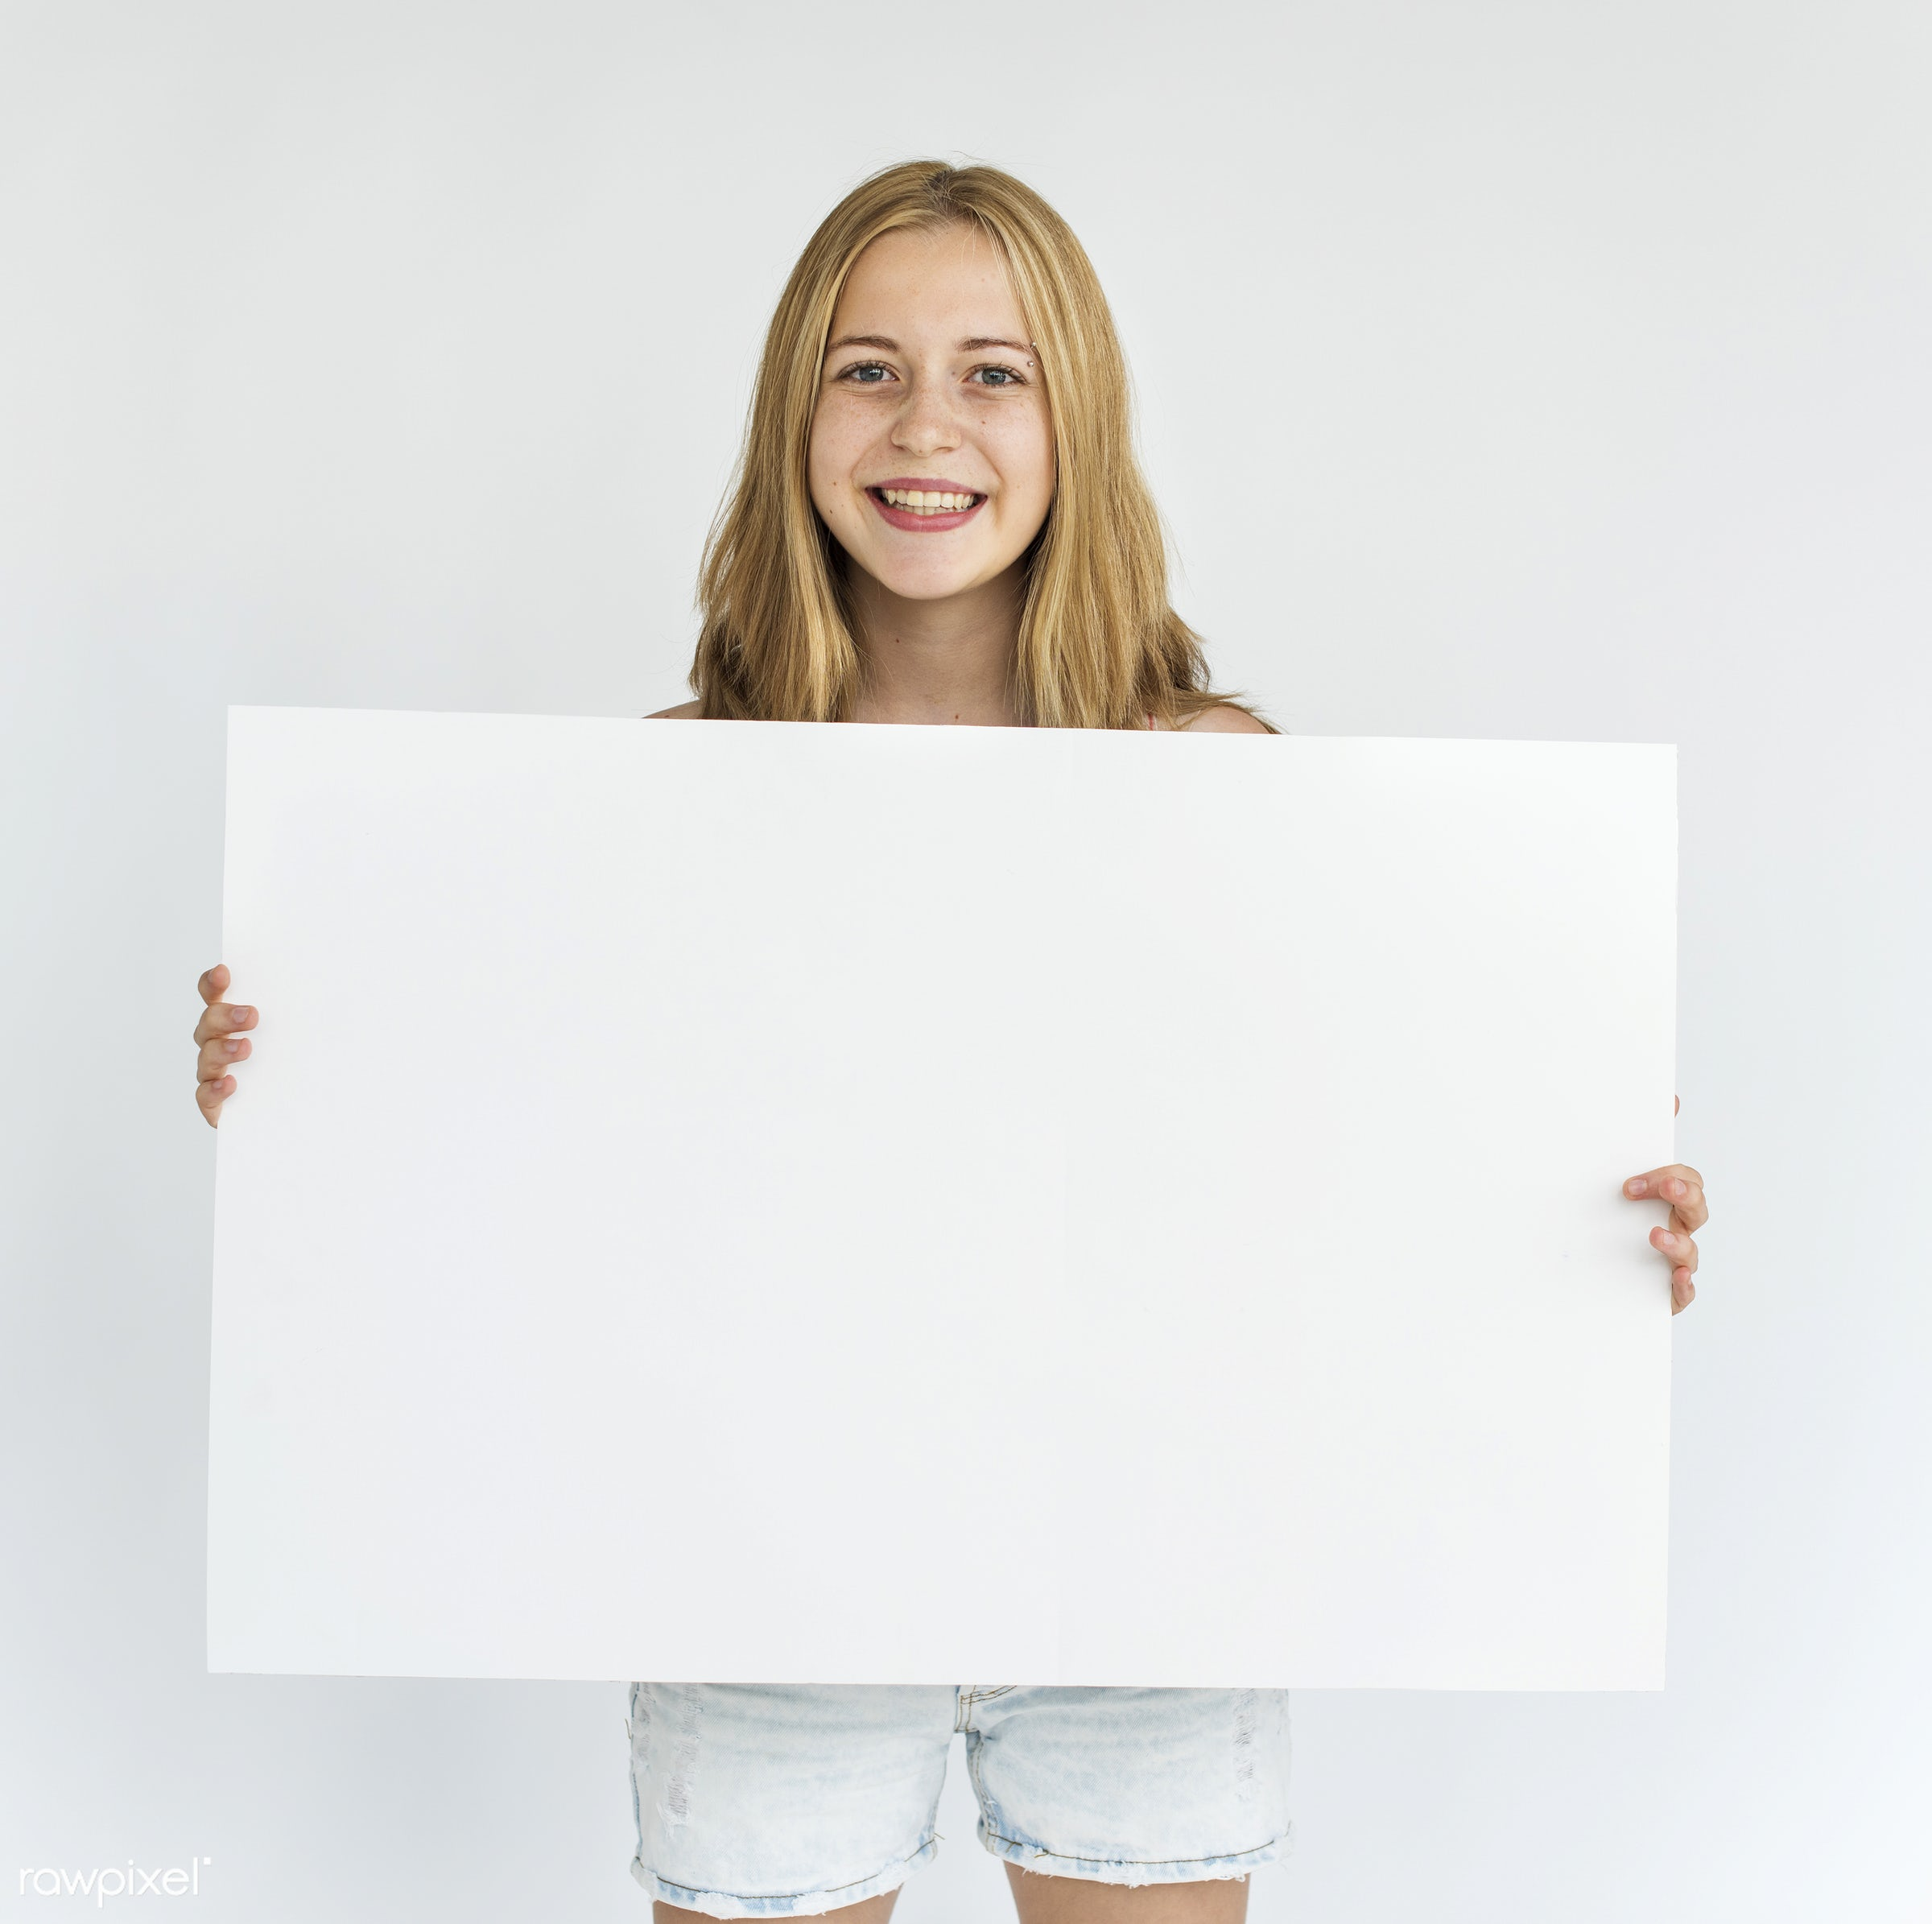 studio, person, holding, nice, placard, woman, teenager, empty, smile, cheerful, smiling, isolated, canvas, happiness, youth...